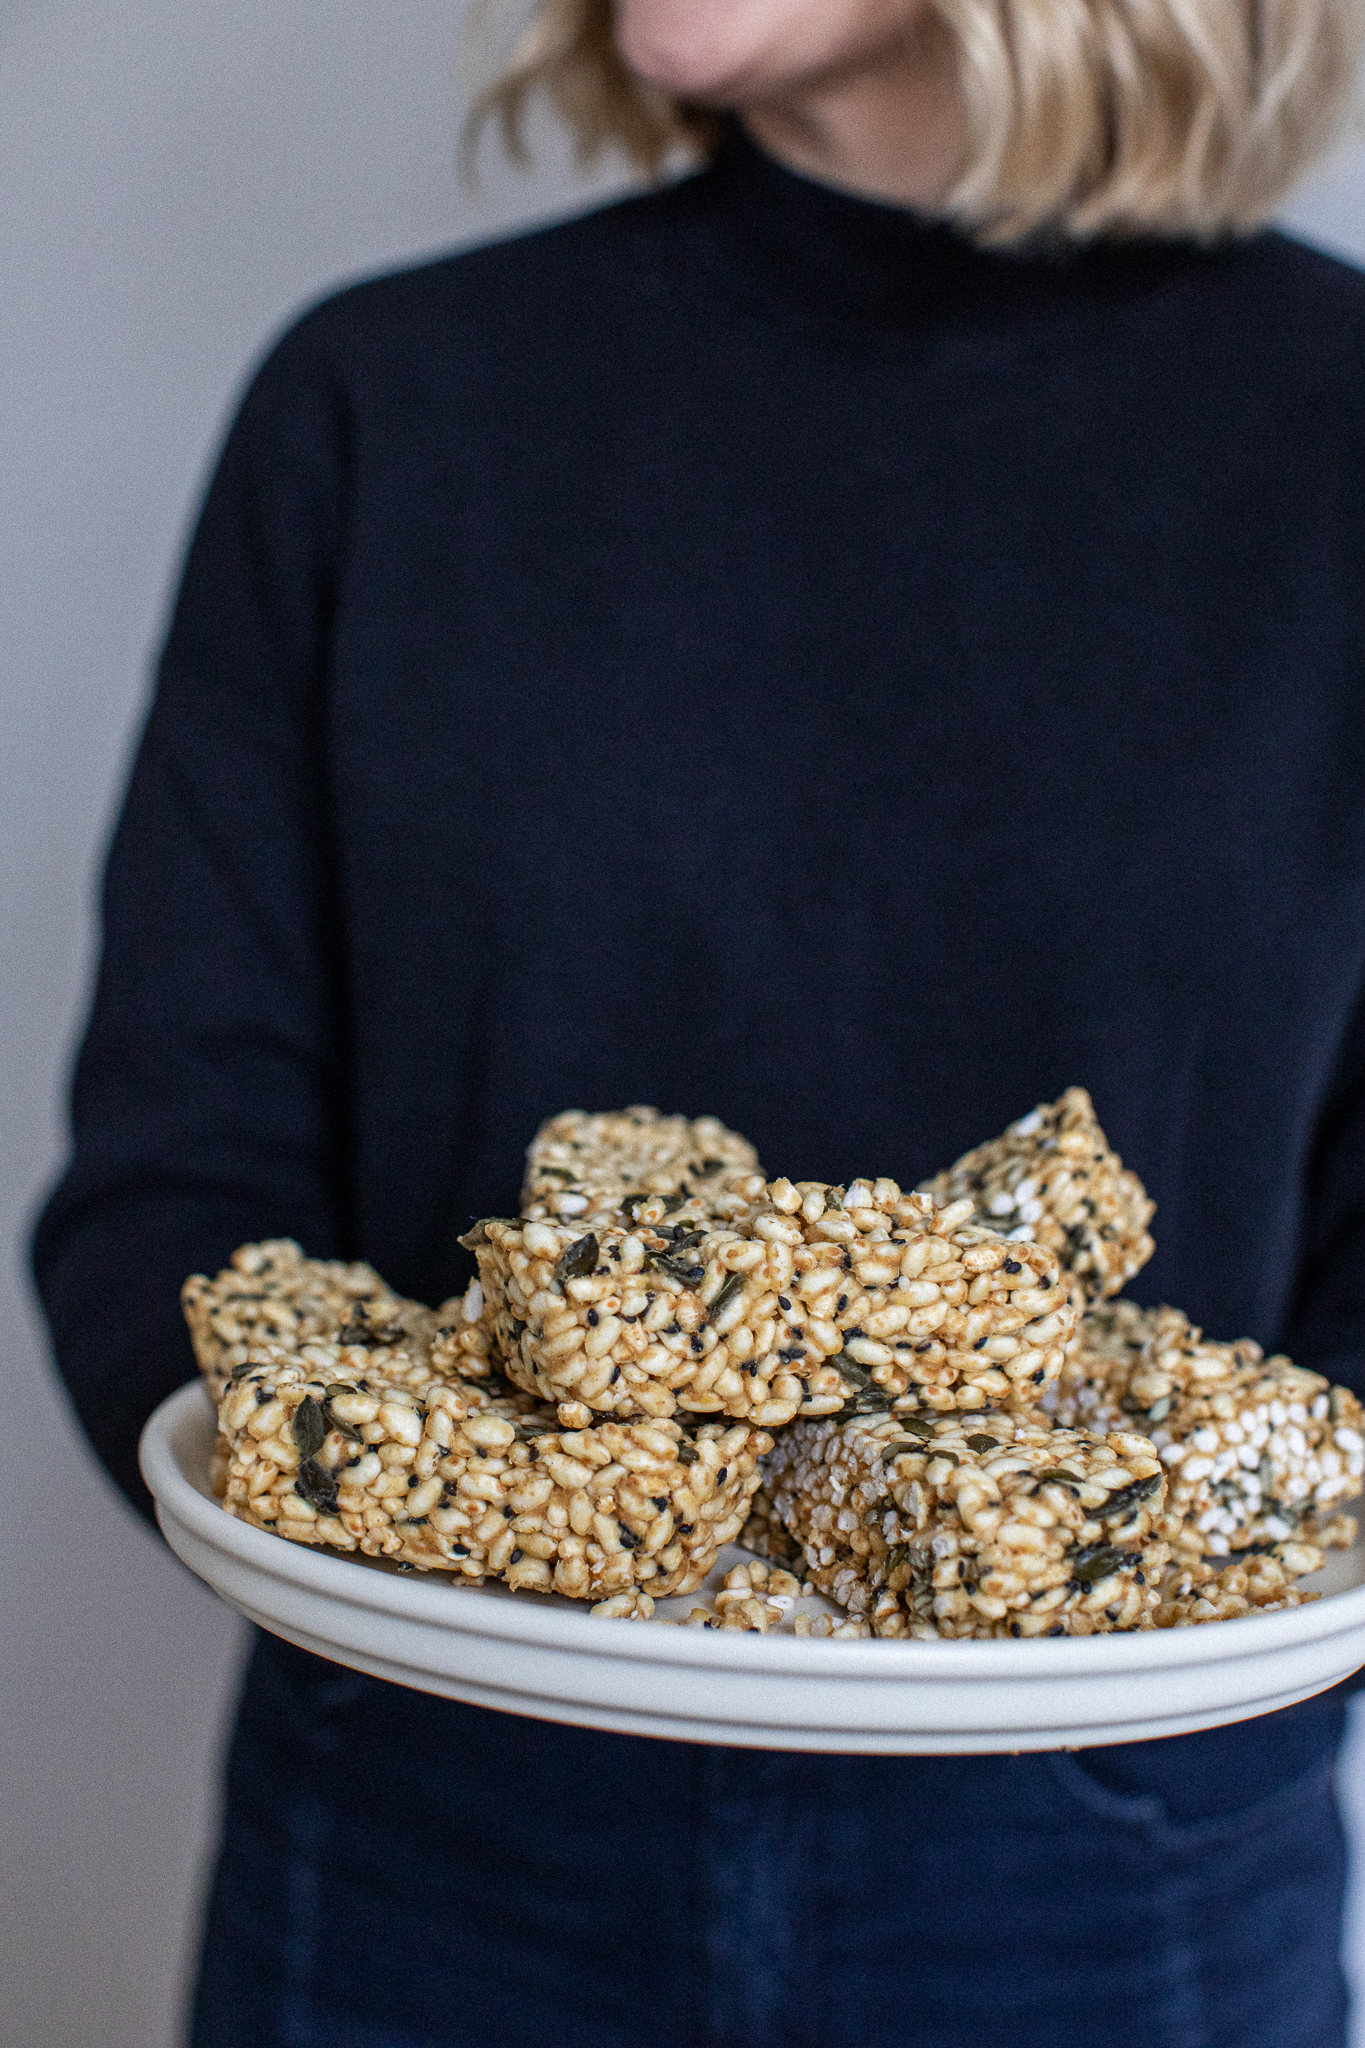 Low FODMAP rice crispy bars